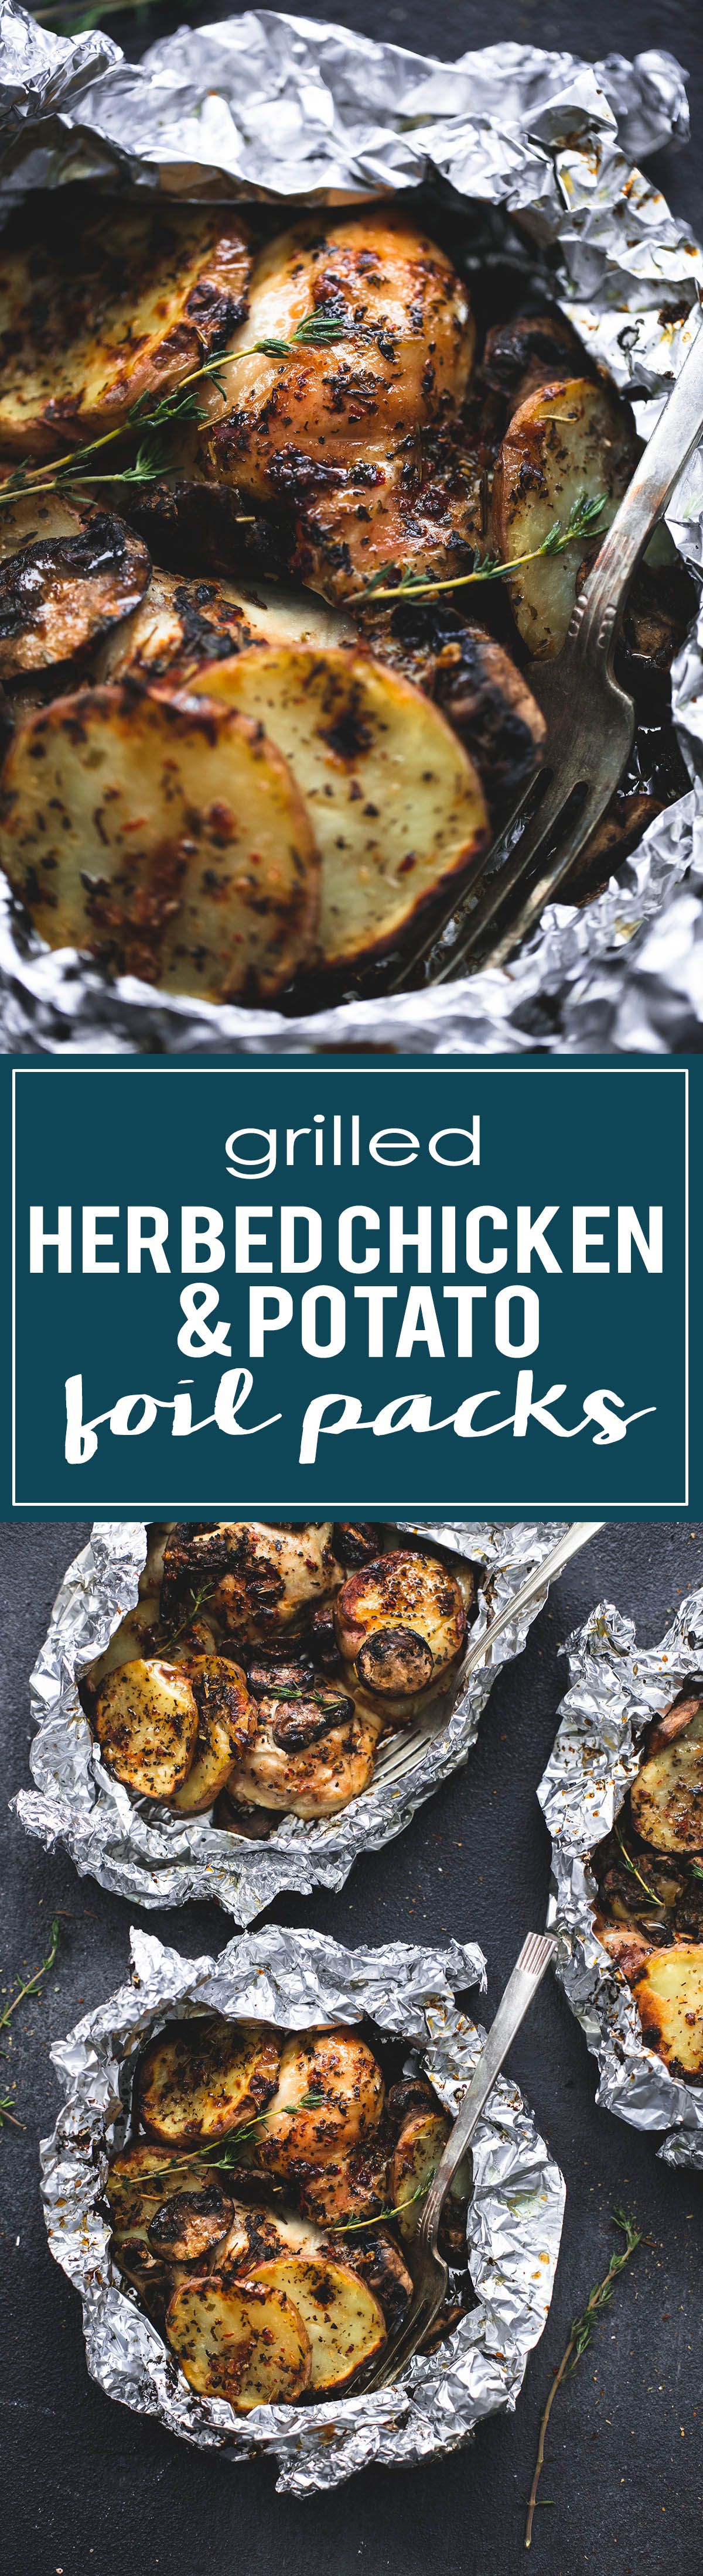 30-Minute Meals for Quick, Healthy Dinner Ideas #grillingrecipes